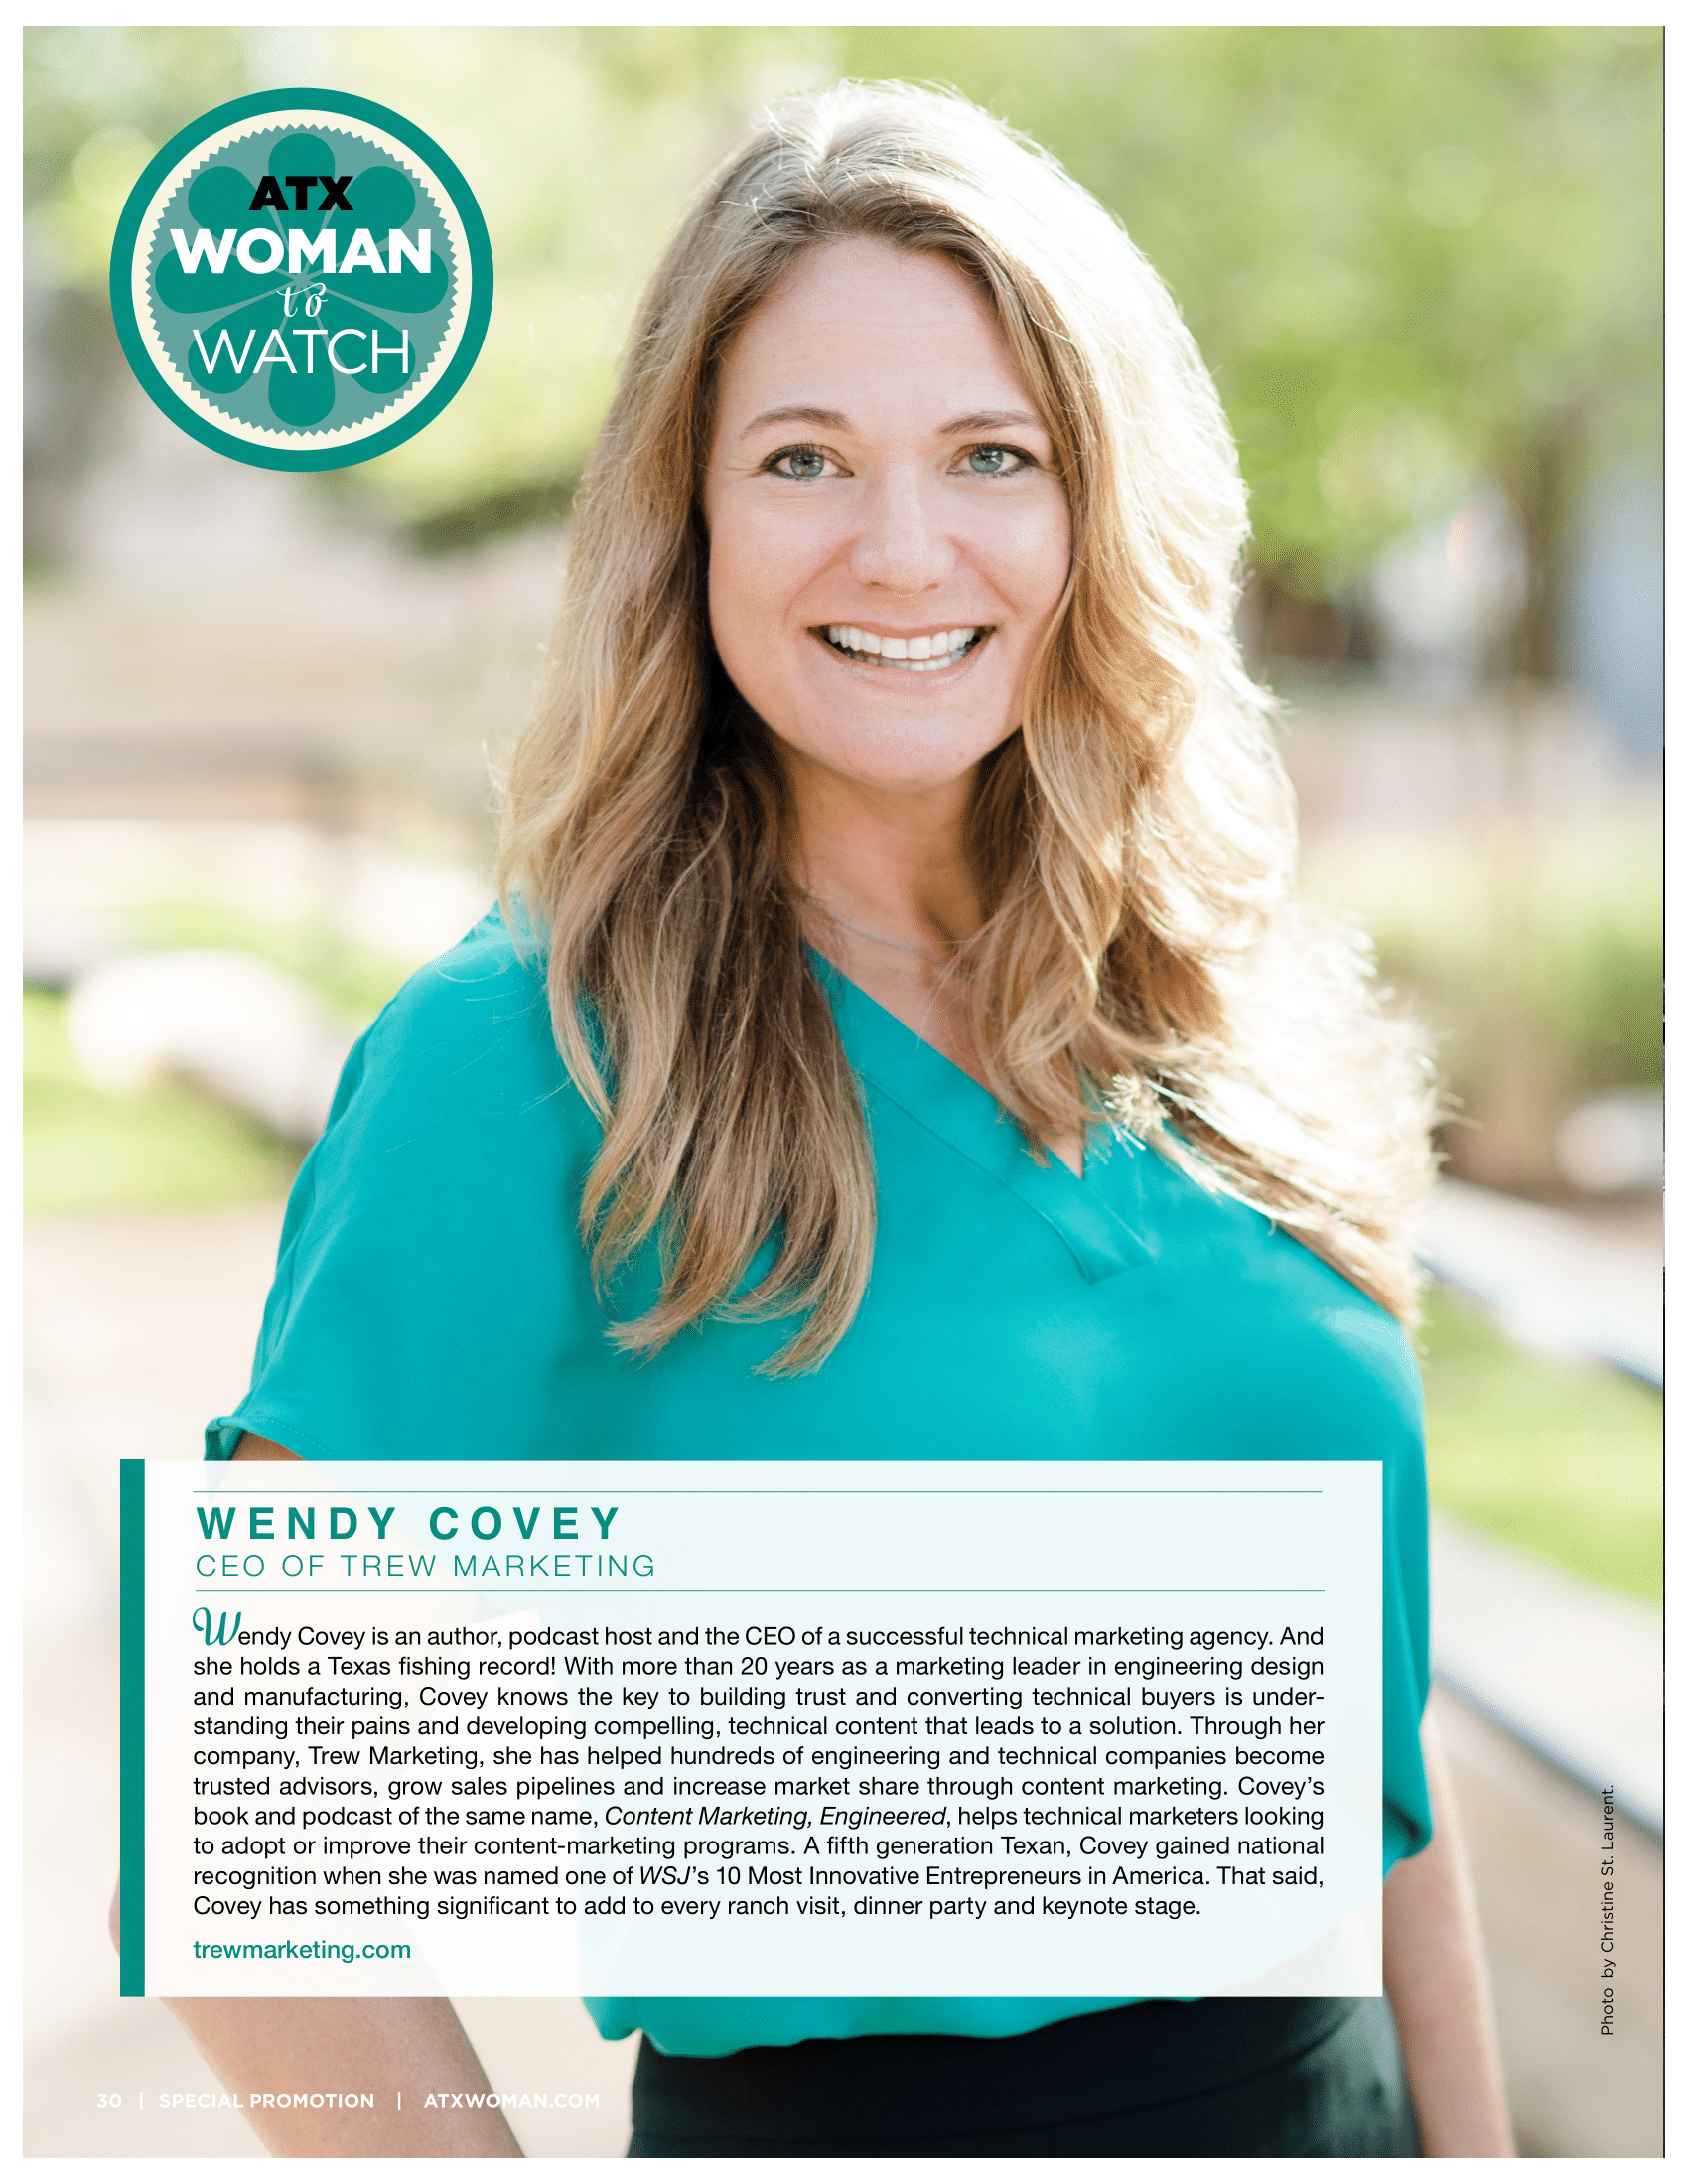 Austin Woman Wendy Covey Feature Woman to Watch (1)-1